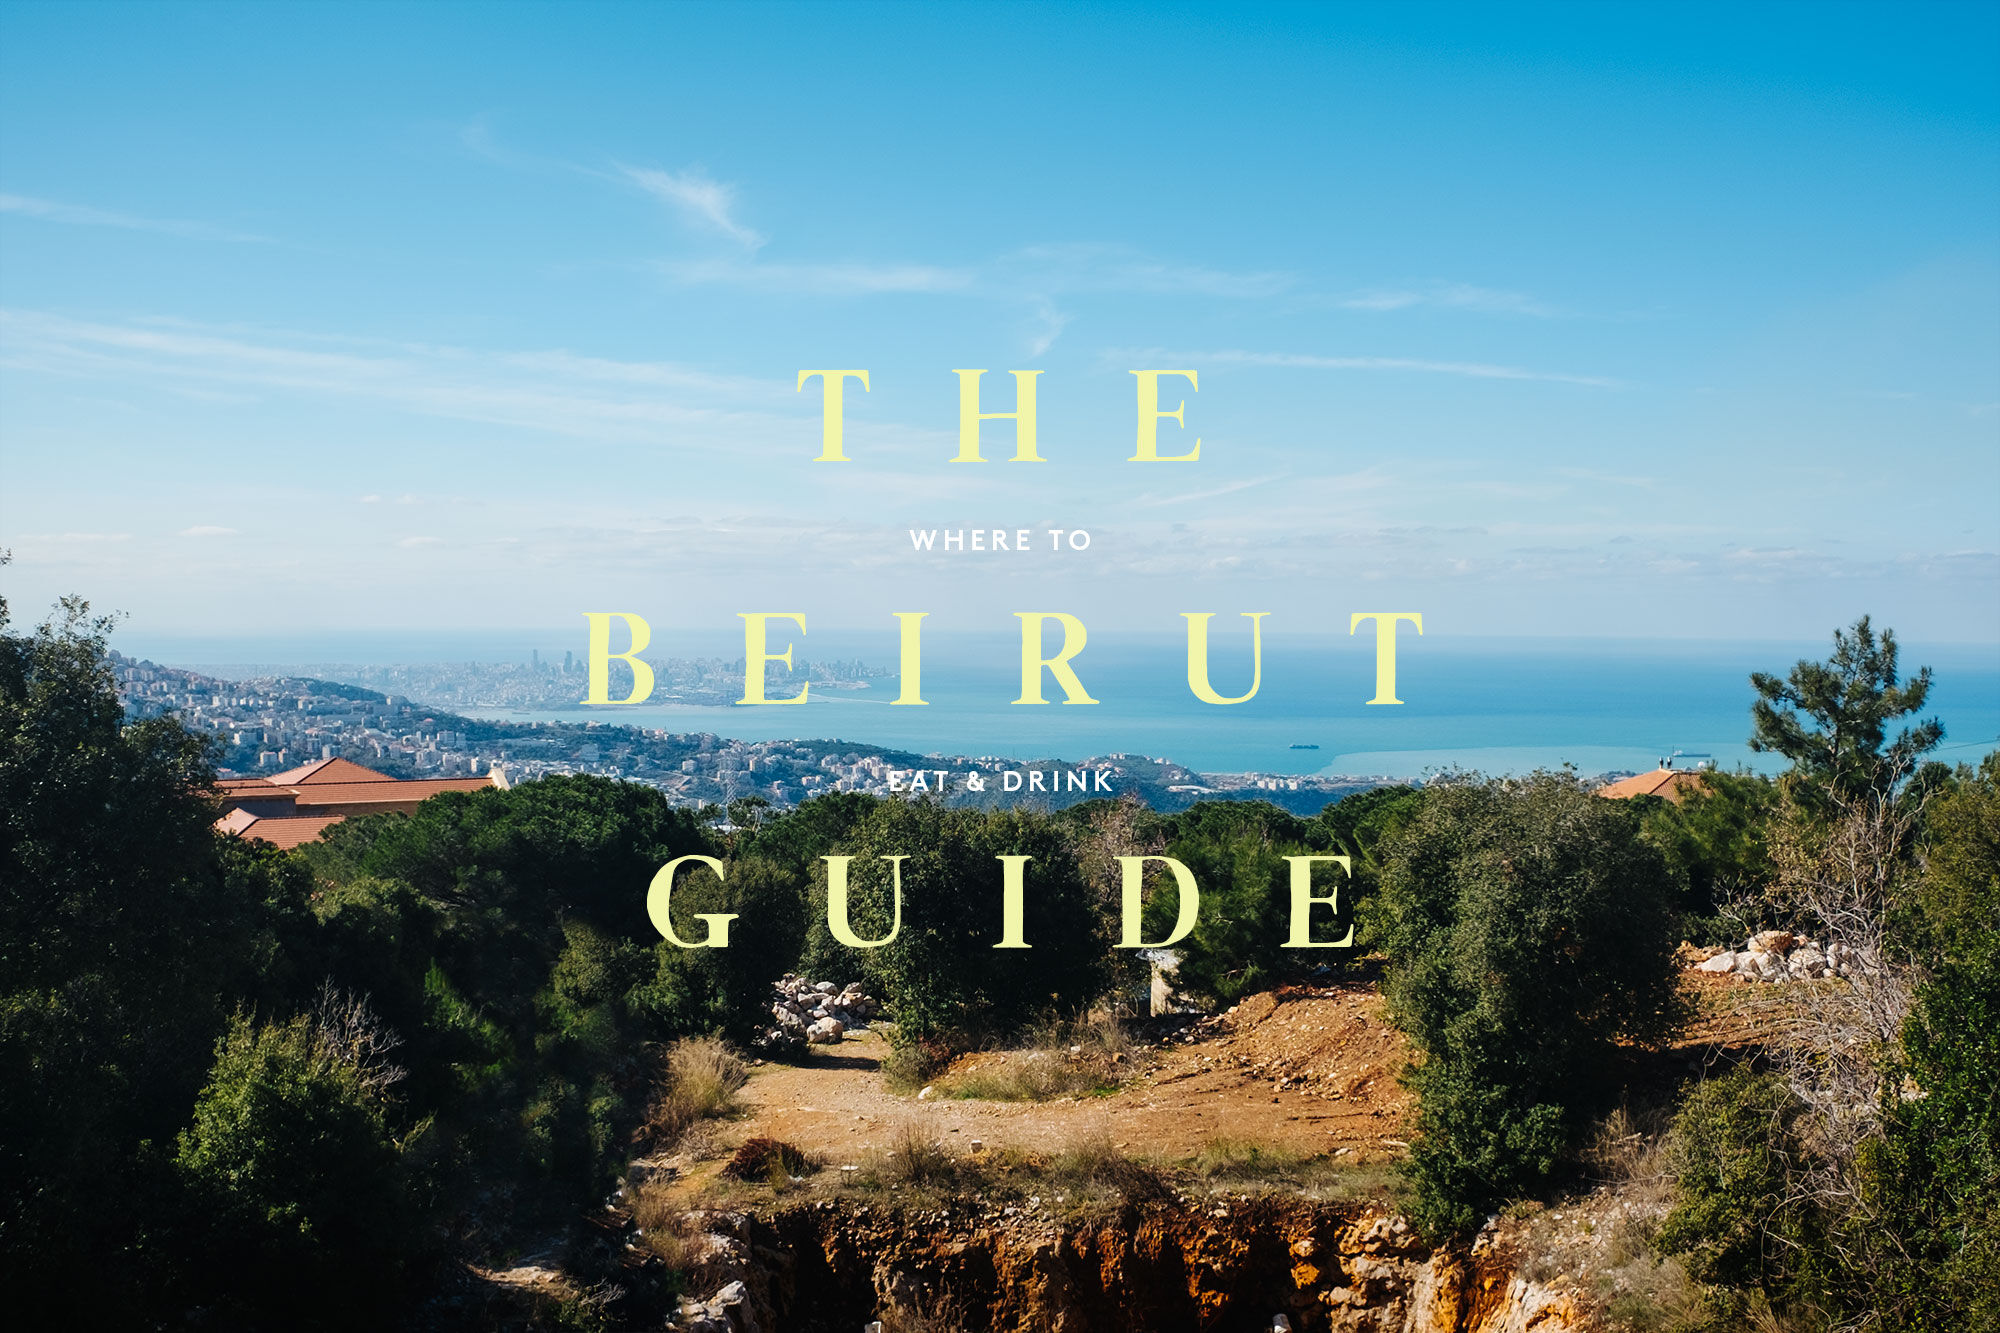 beirut-where-to-eat-and-drink-travelguide-ploppestable-petterbacklund